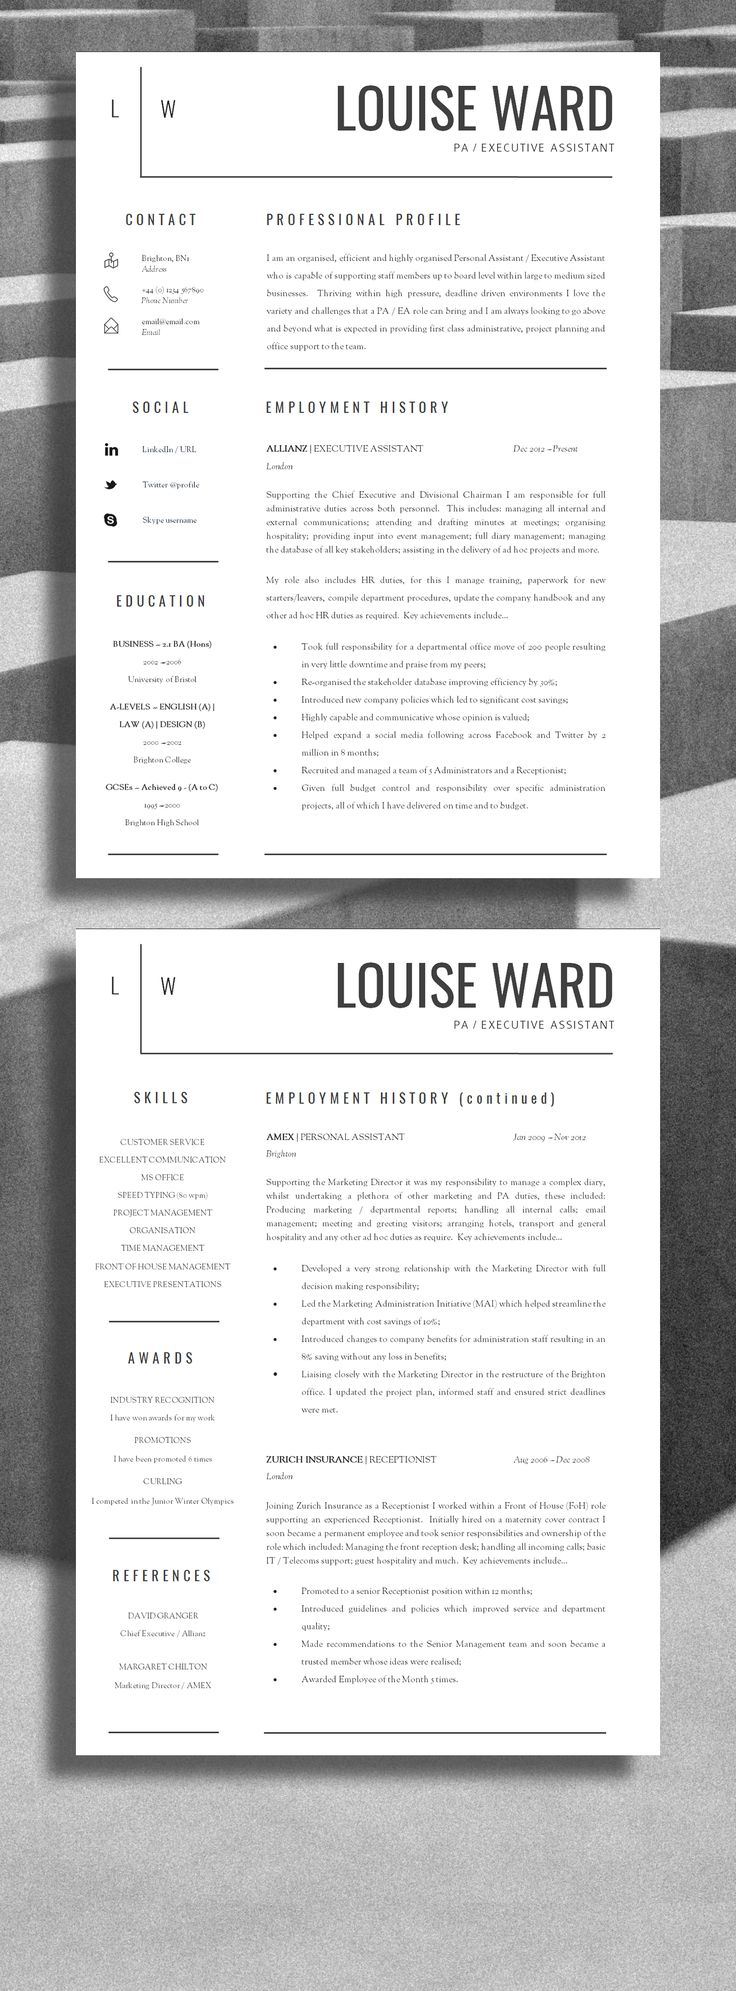 resume What Is Cv Resume 190 best resume design layouts images on pinterest template cv cover letter advice for ms word instant digital download mac or pc aldgate template